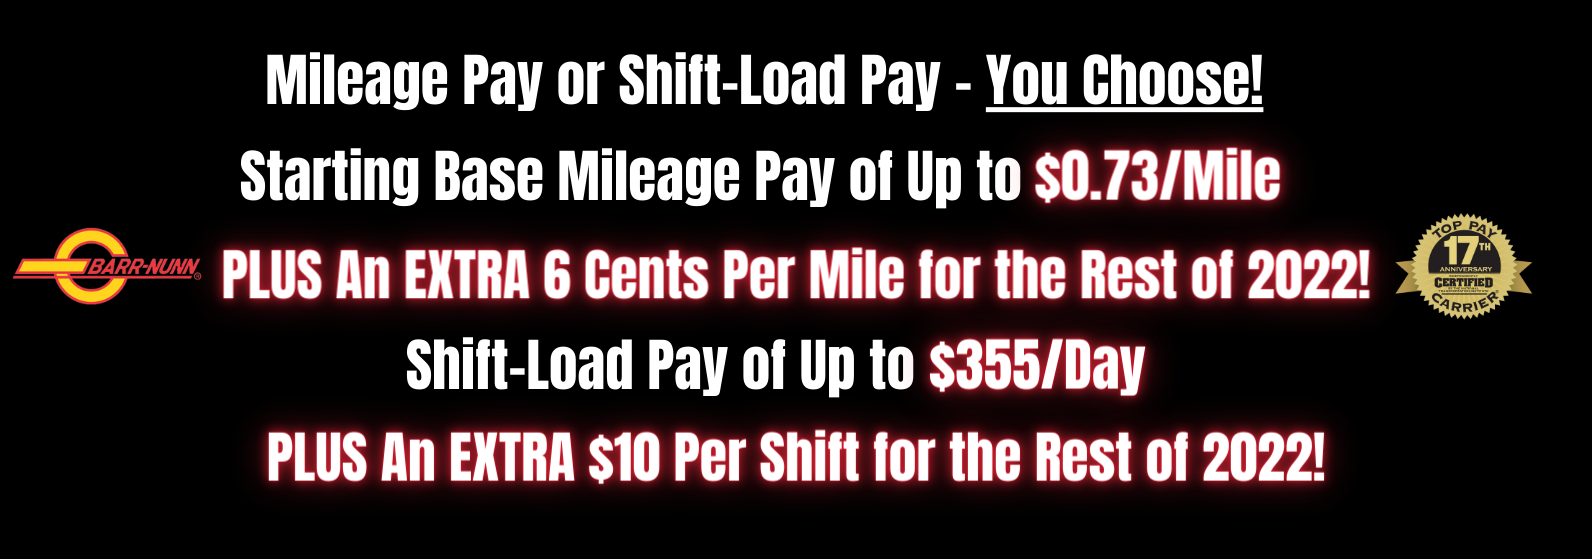 Barr-Nunn offers many types of pay options for professional truck drivers